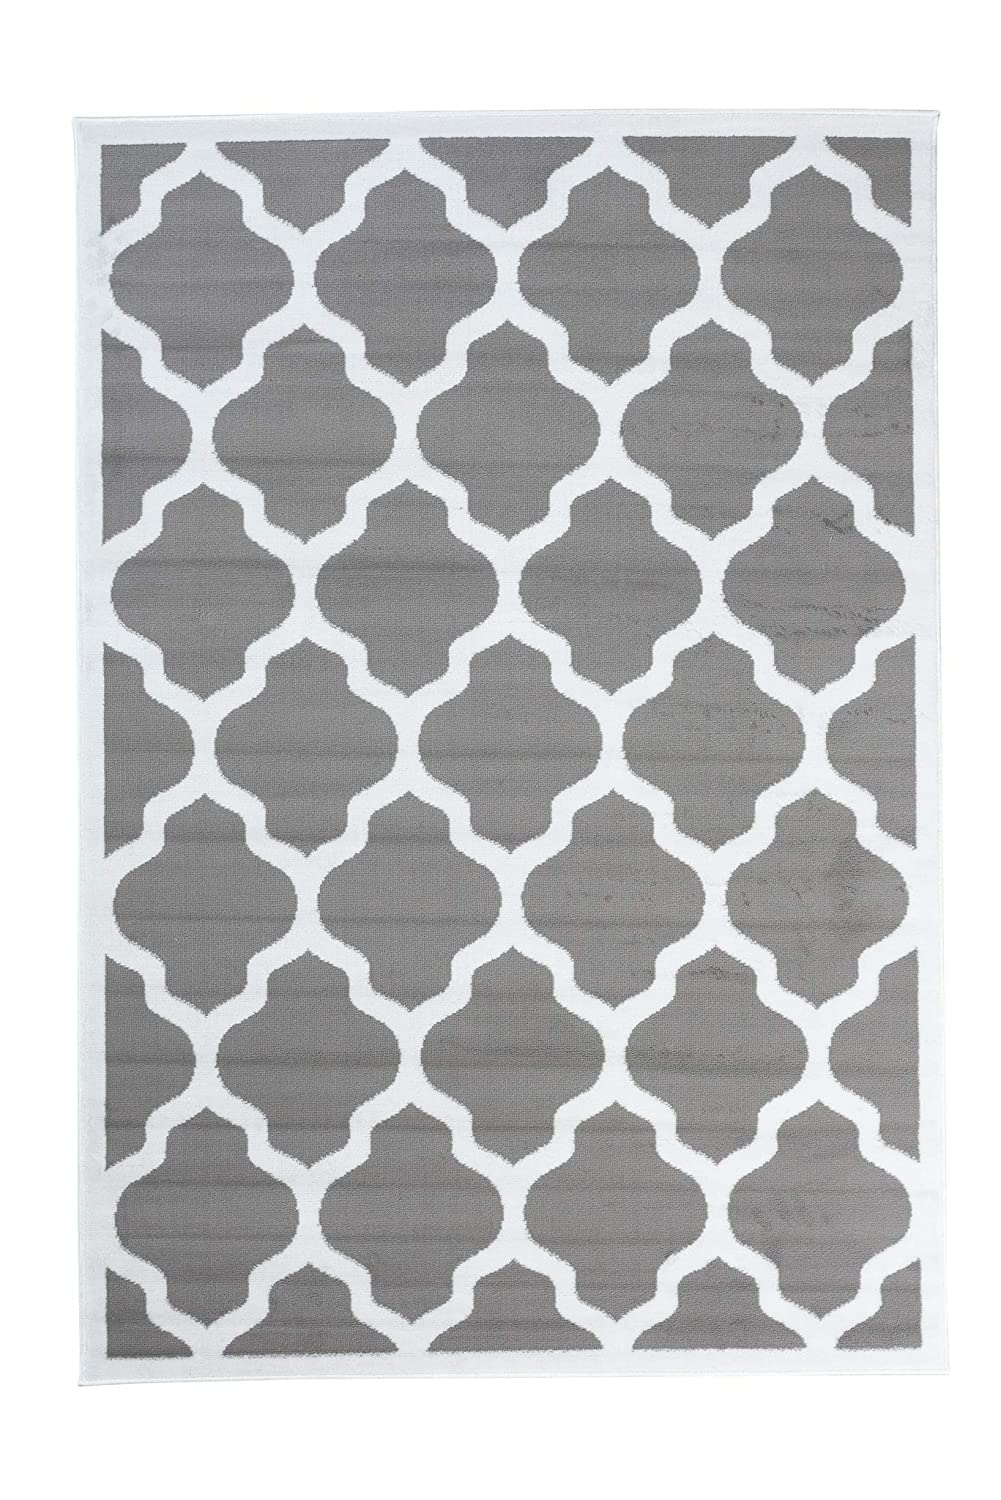 Tapiso Collection Luxury Tapis de Salon Chambre Moderne Couleur Gris Clair Blanc Motif G/éom/étrique Facile dentretien Haute Qualit/é 80 x 150 cm